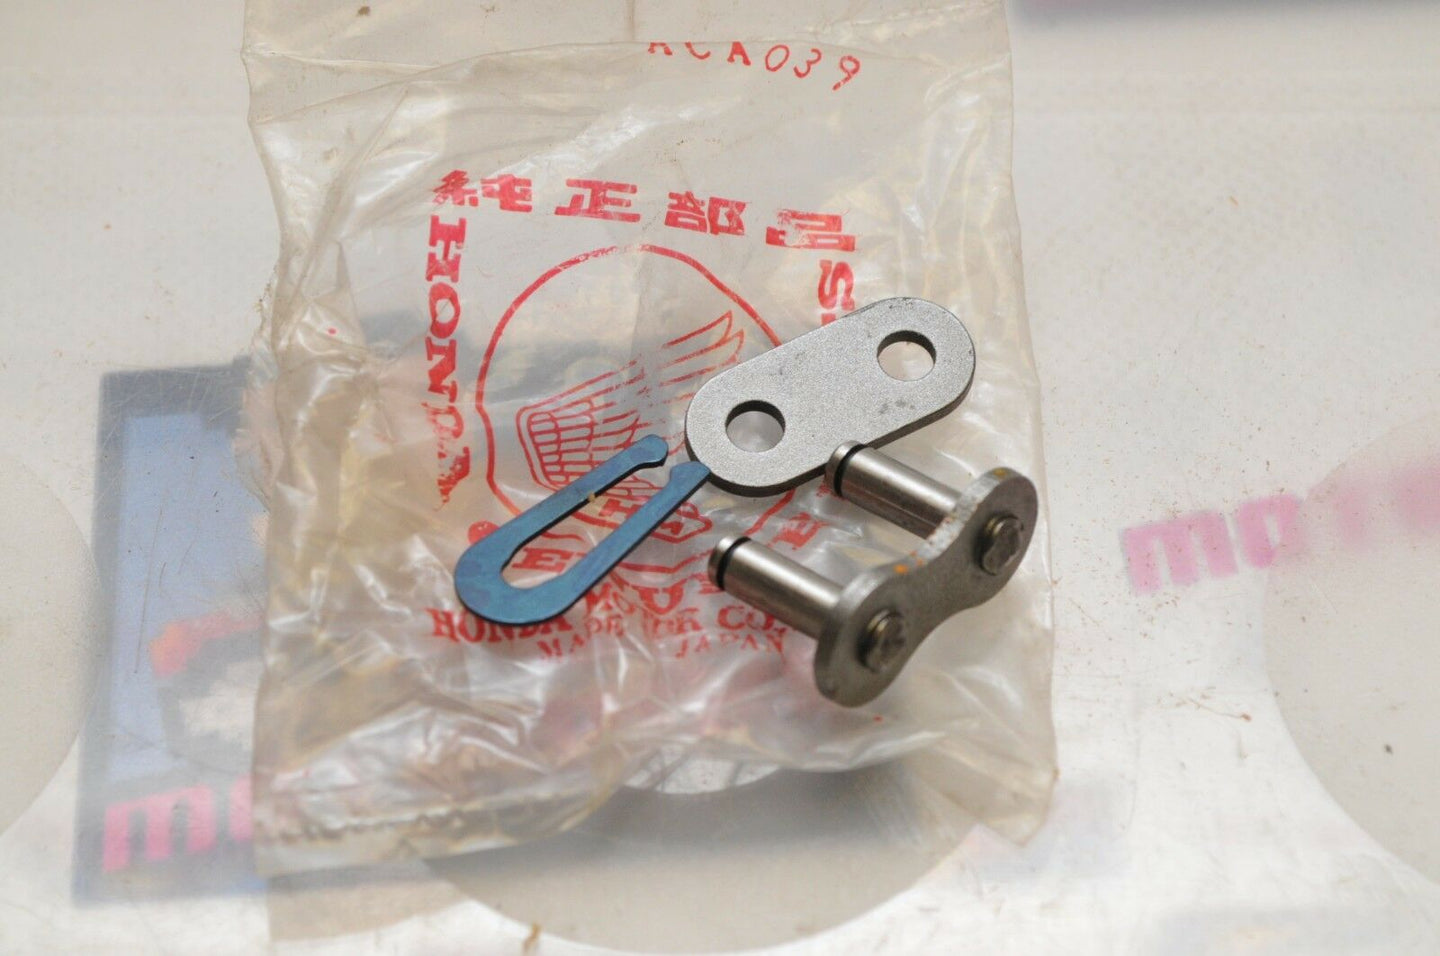 NEW NOS OEM HONDA 40531-430-003 520 CHAIN MASTER CLIP LINK JOINT (958-003)